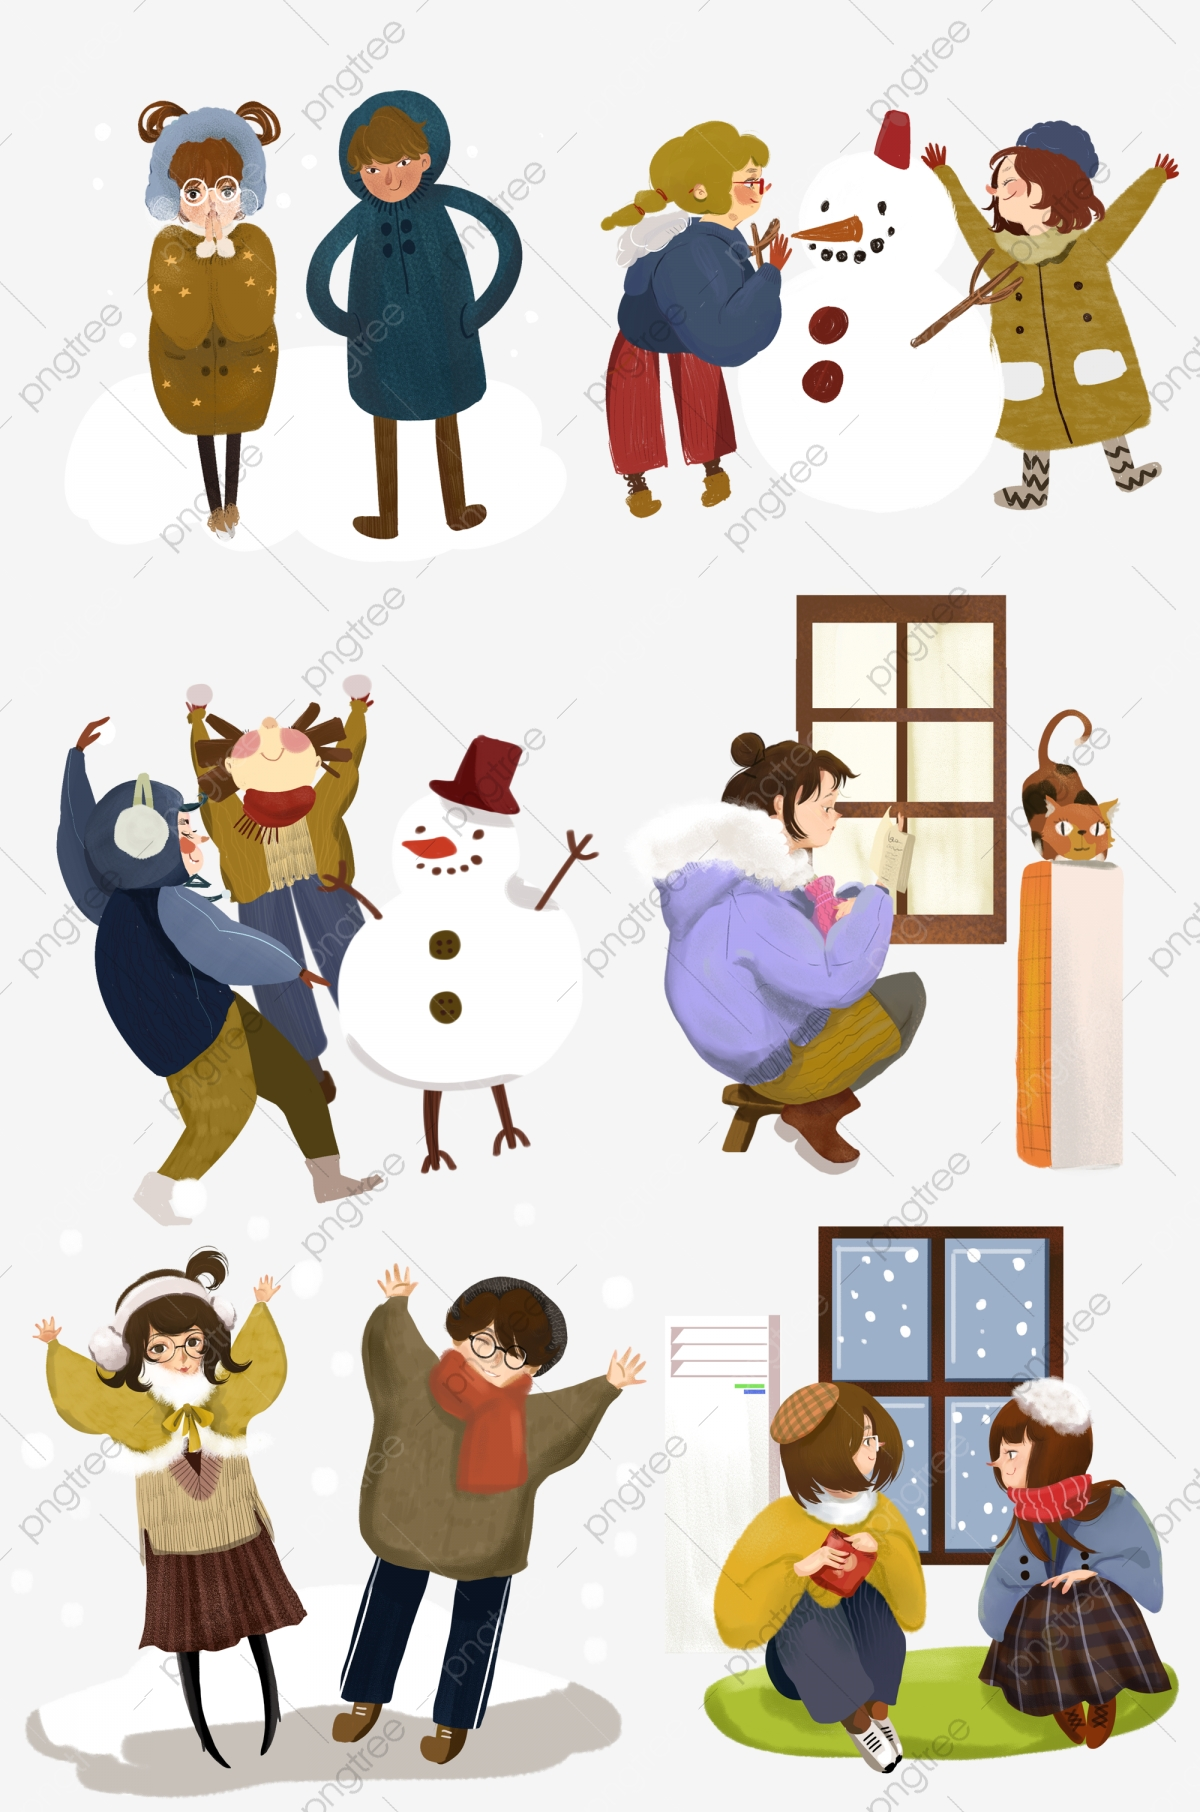 Winter Winter Heating Snow Scene. Snowing. Cold. Cartoon Hand Drawn Wind PNG Transparent Clipart Image and PSD File for Free Download